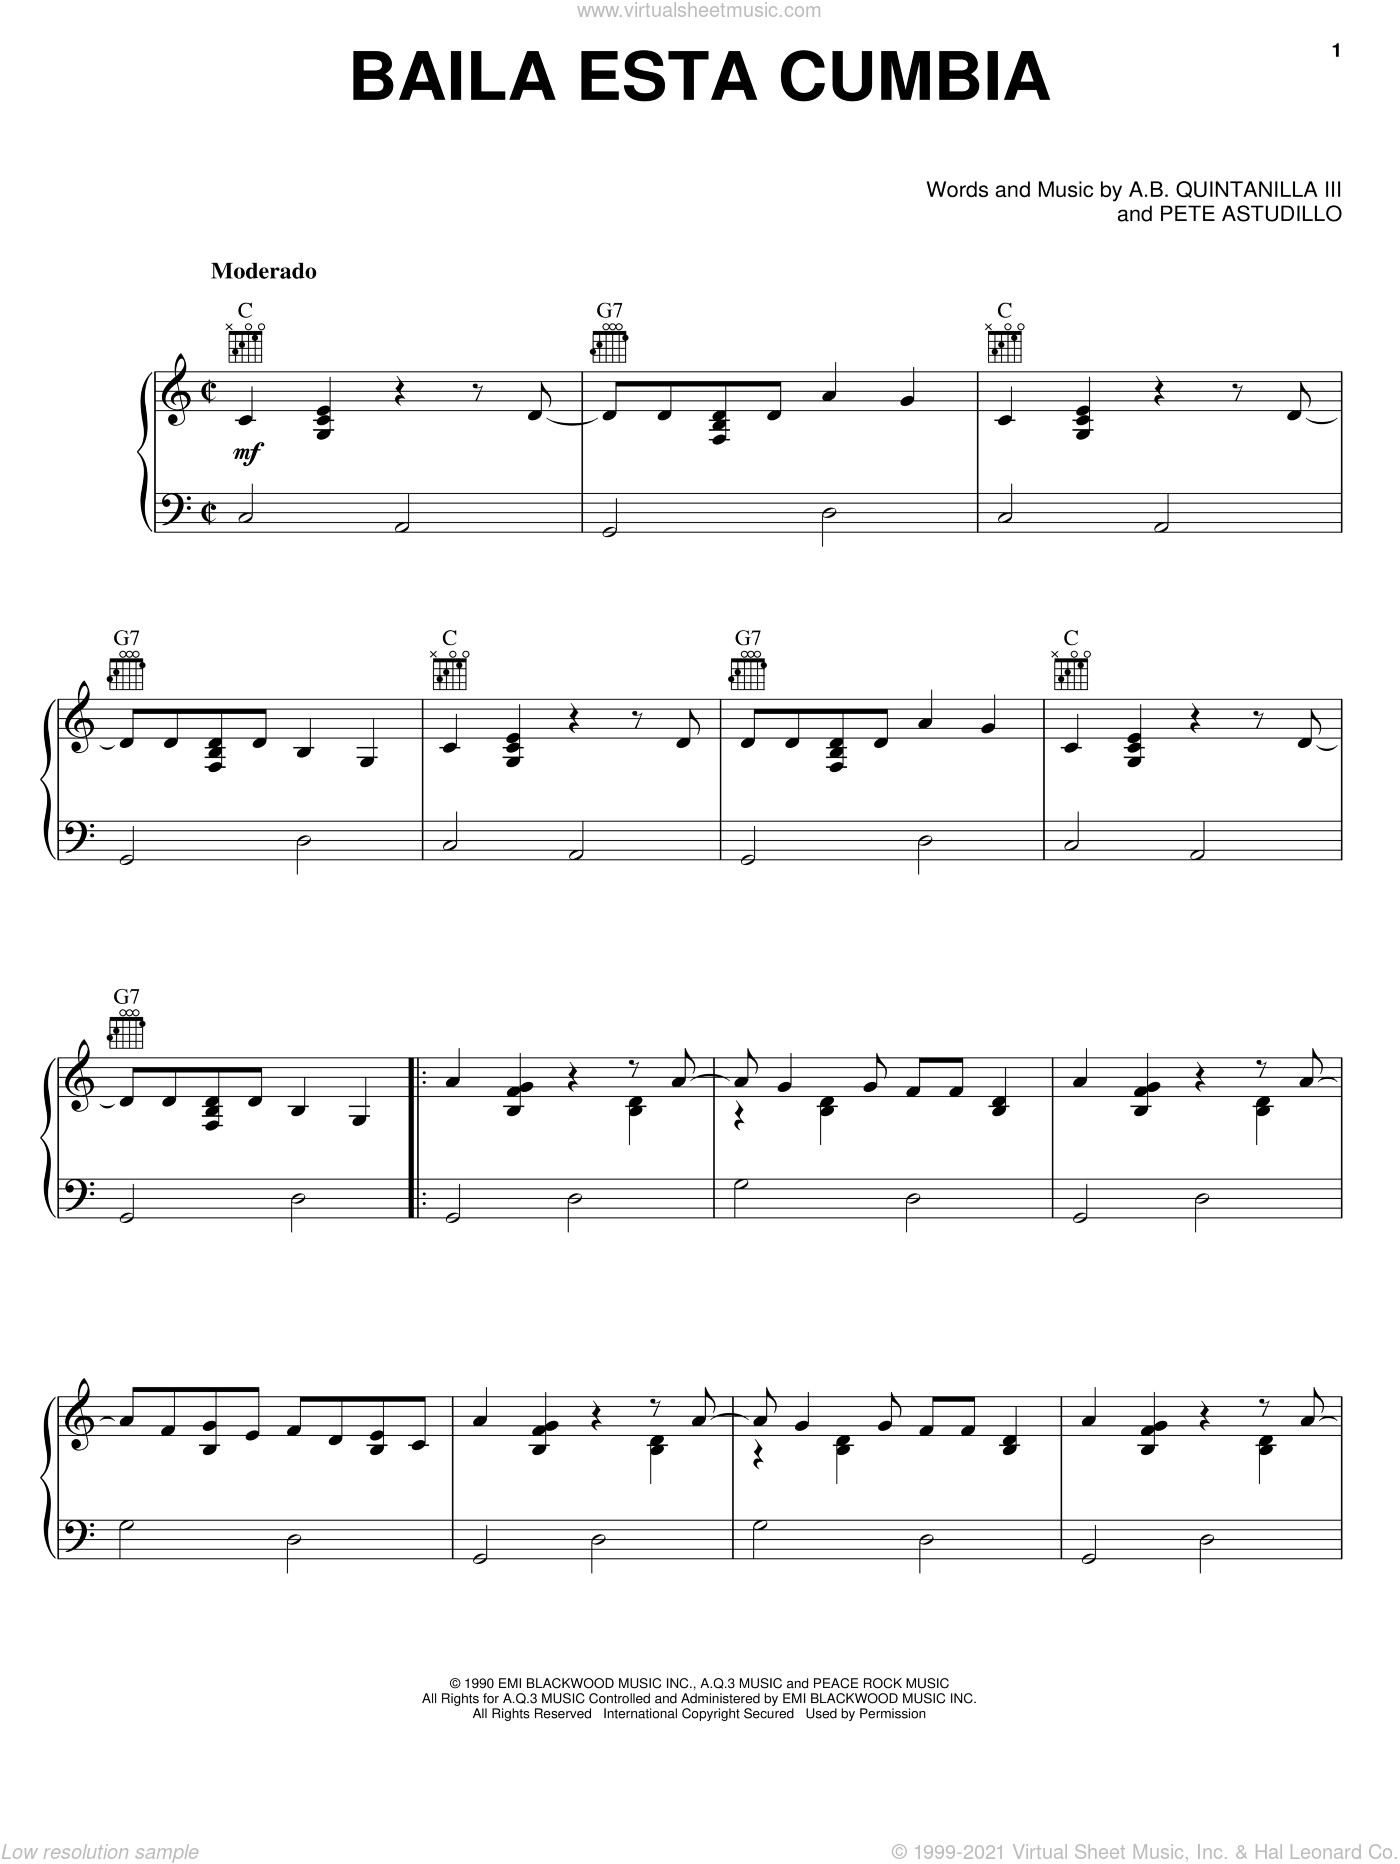 Baila Esta Cumbia sheet music for voice, piano or guitar by Pete Astudillo